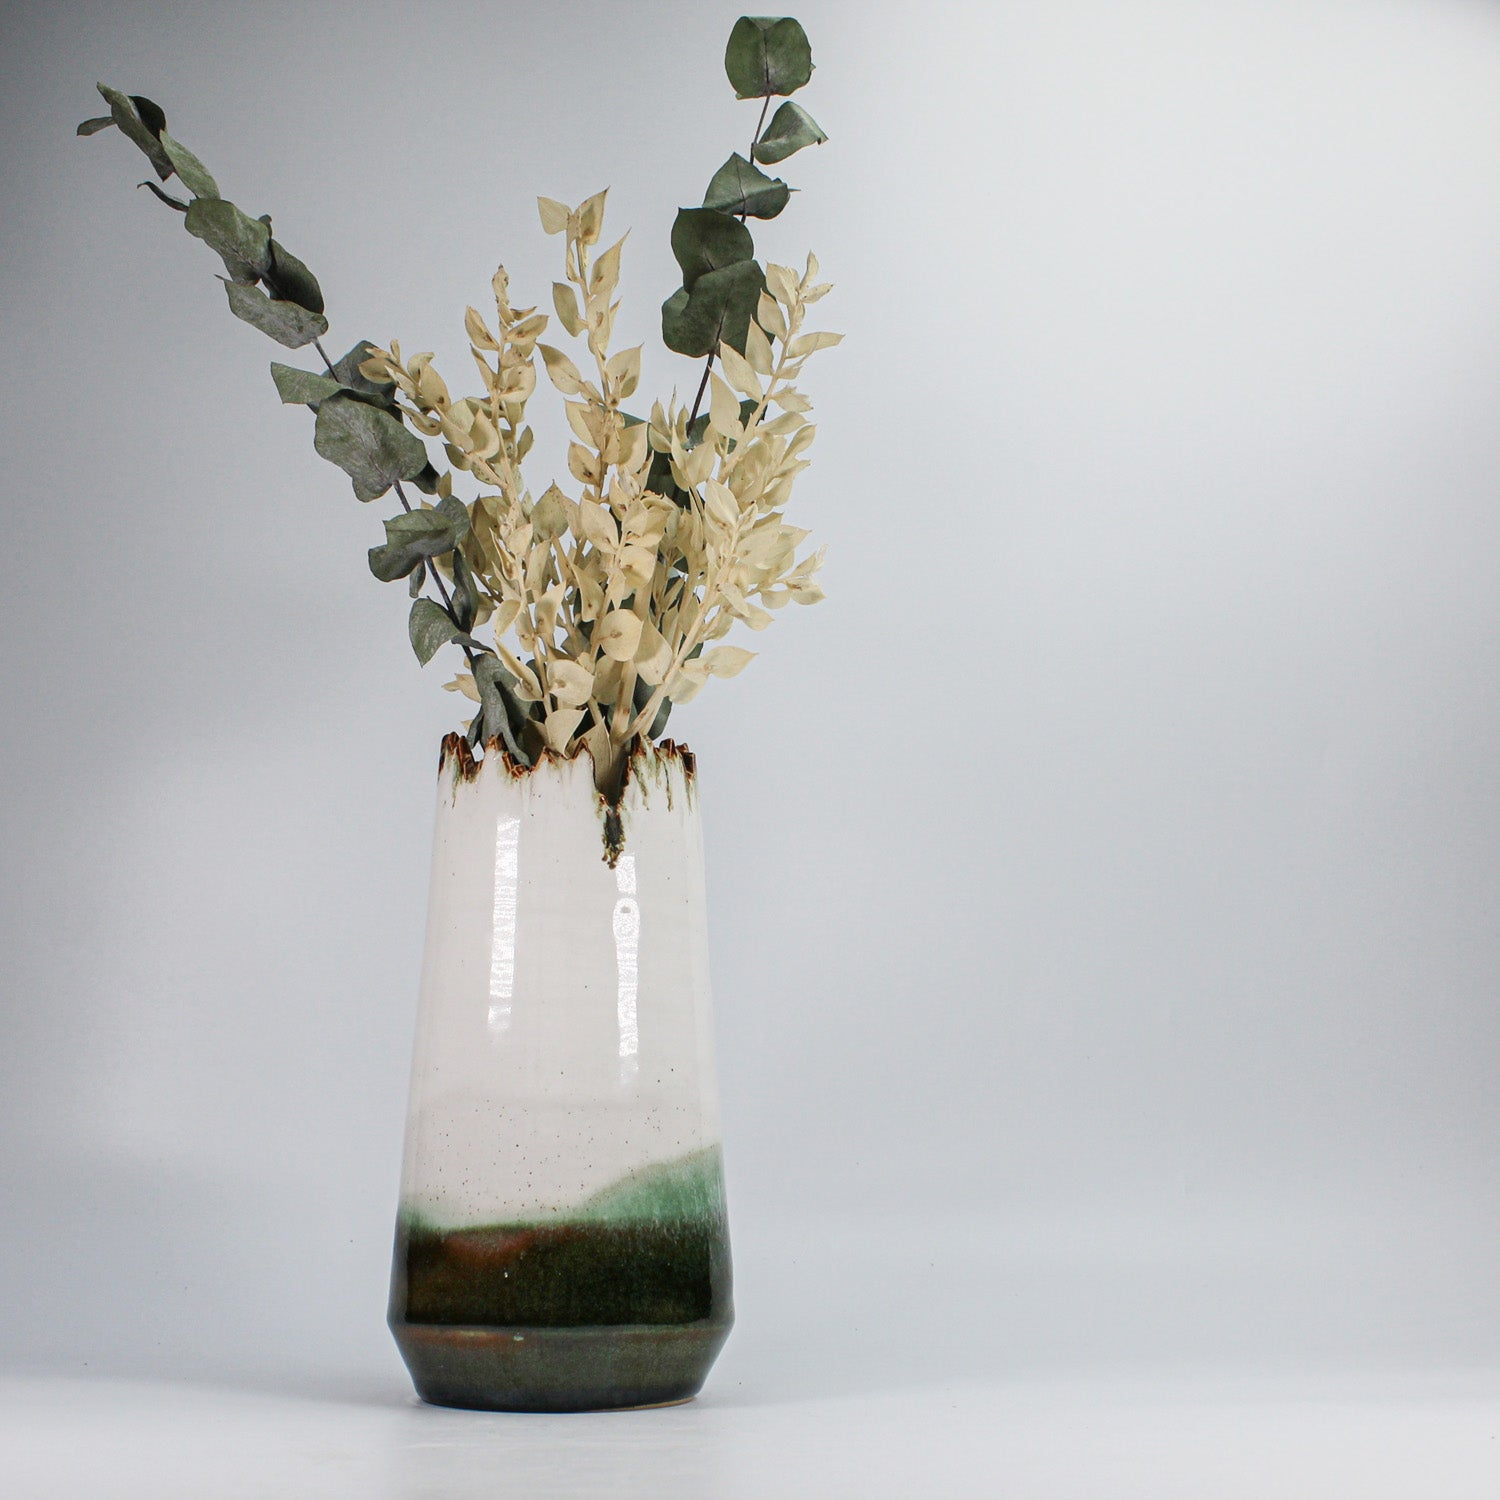 Large pottery vase with jagged top. White, green and brown. Dried flowers displayed within.